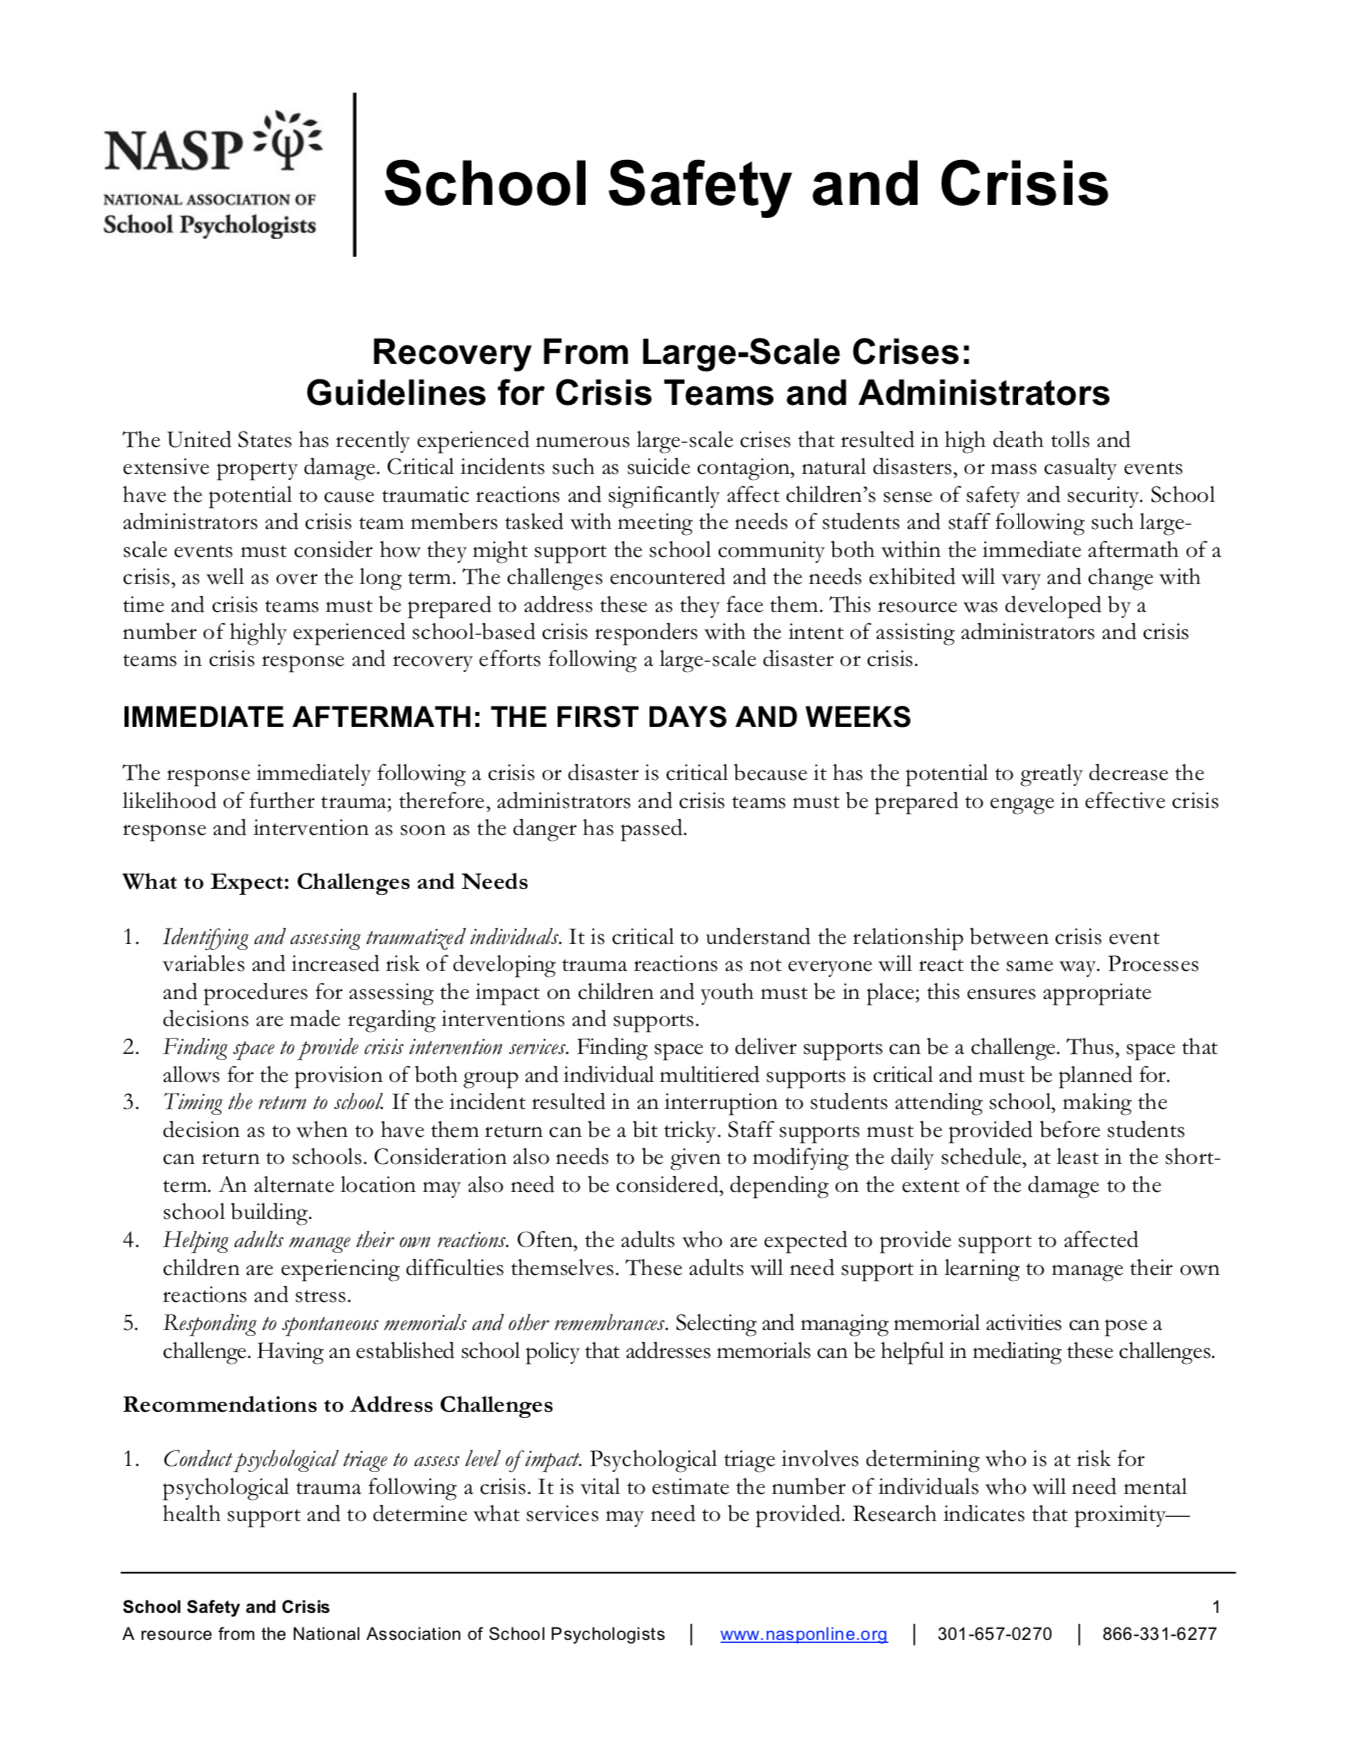 Recovery From Large Scale Crises Guidelines For Crisis Teams And